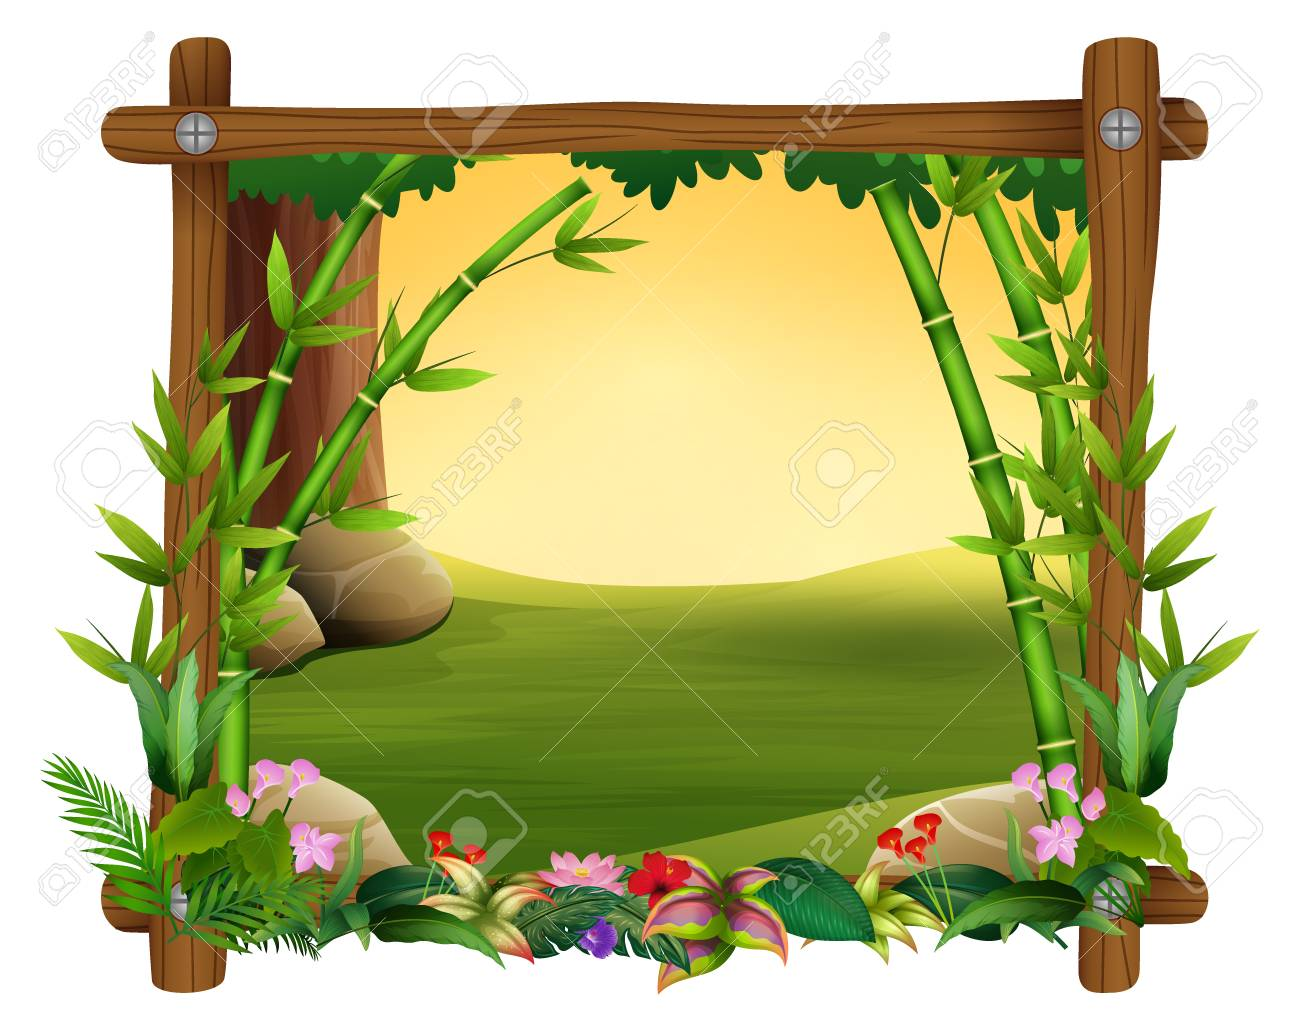 illustration of bamboo trees in frame nature royalty free cliparts vectors and stock illustration image 106845972 illustration of bamboo trees in frame nature